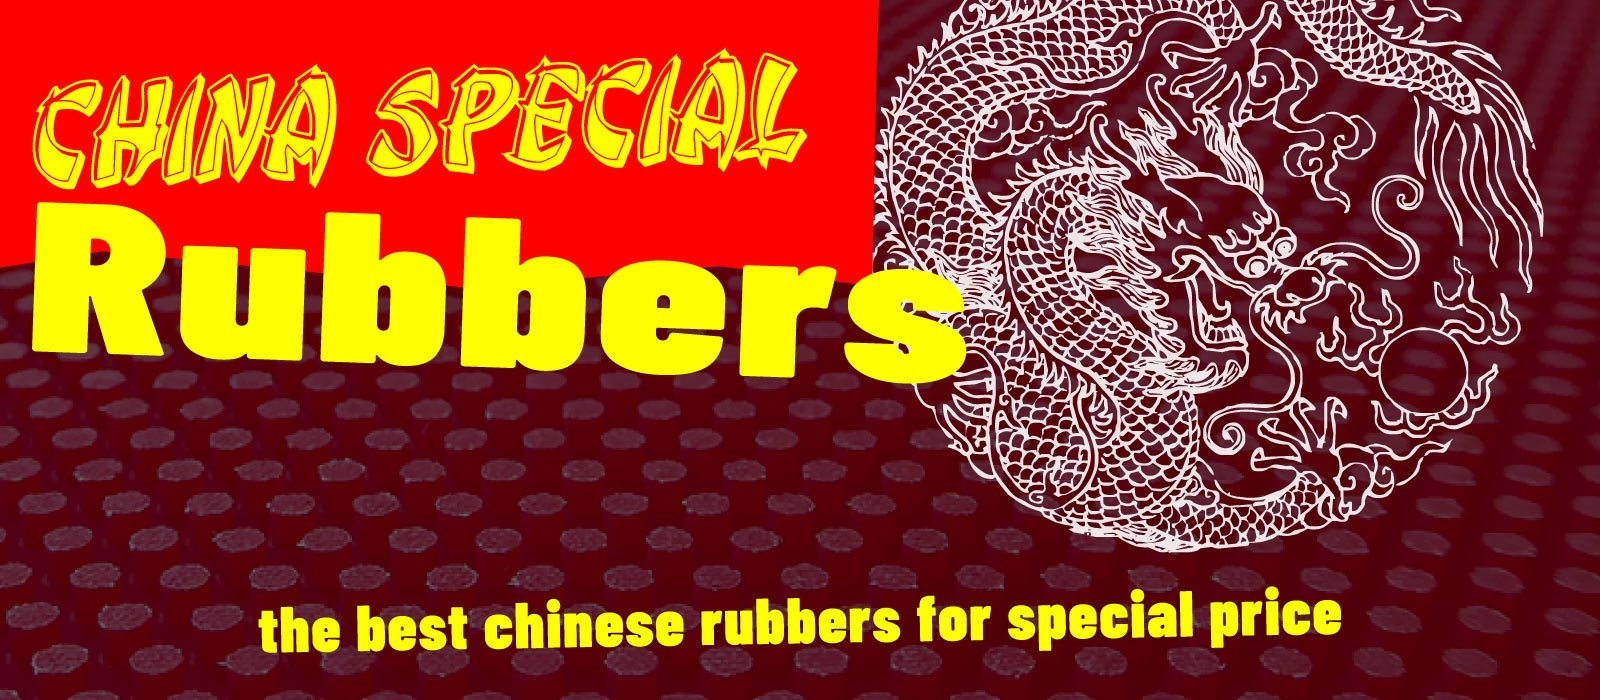 China-Special Rubbers